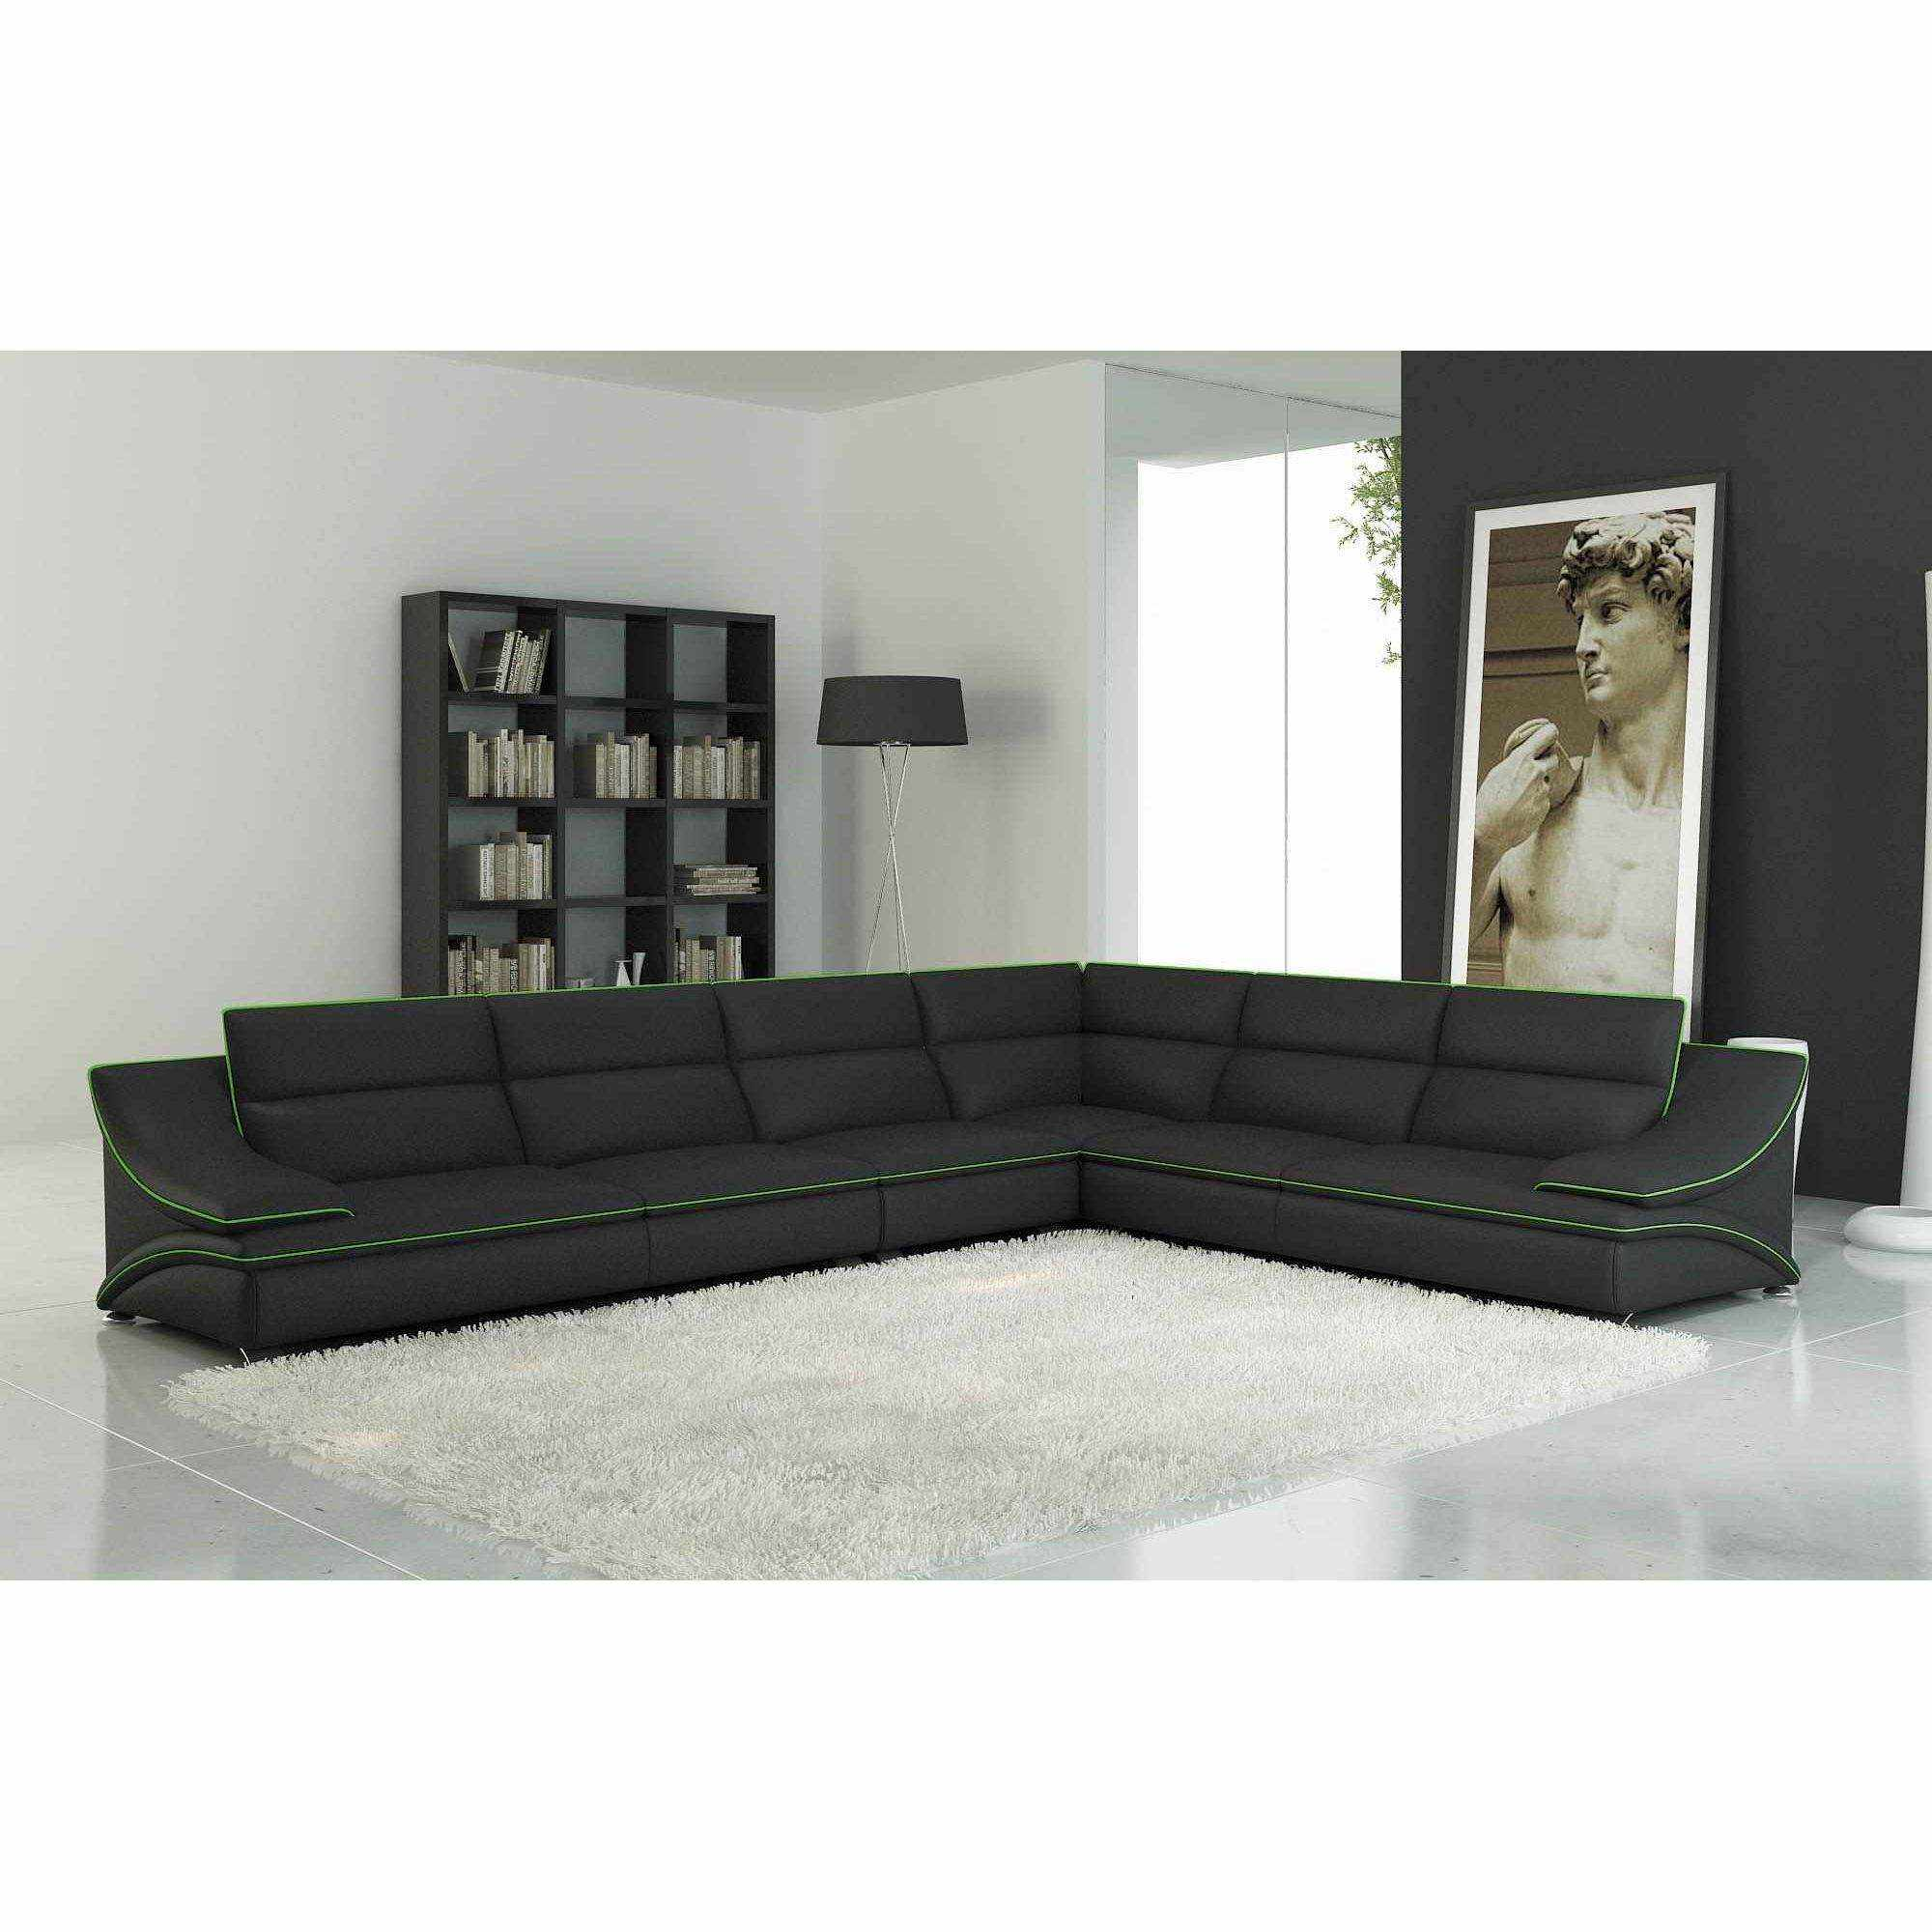 deco in paris 1 canape d angle cuir design noir et vert roxa roxa 3a2 noir et vert. Black Bedroom Furniture Sets. Home Design Ideas